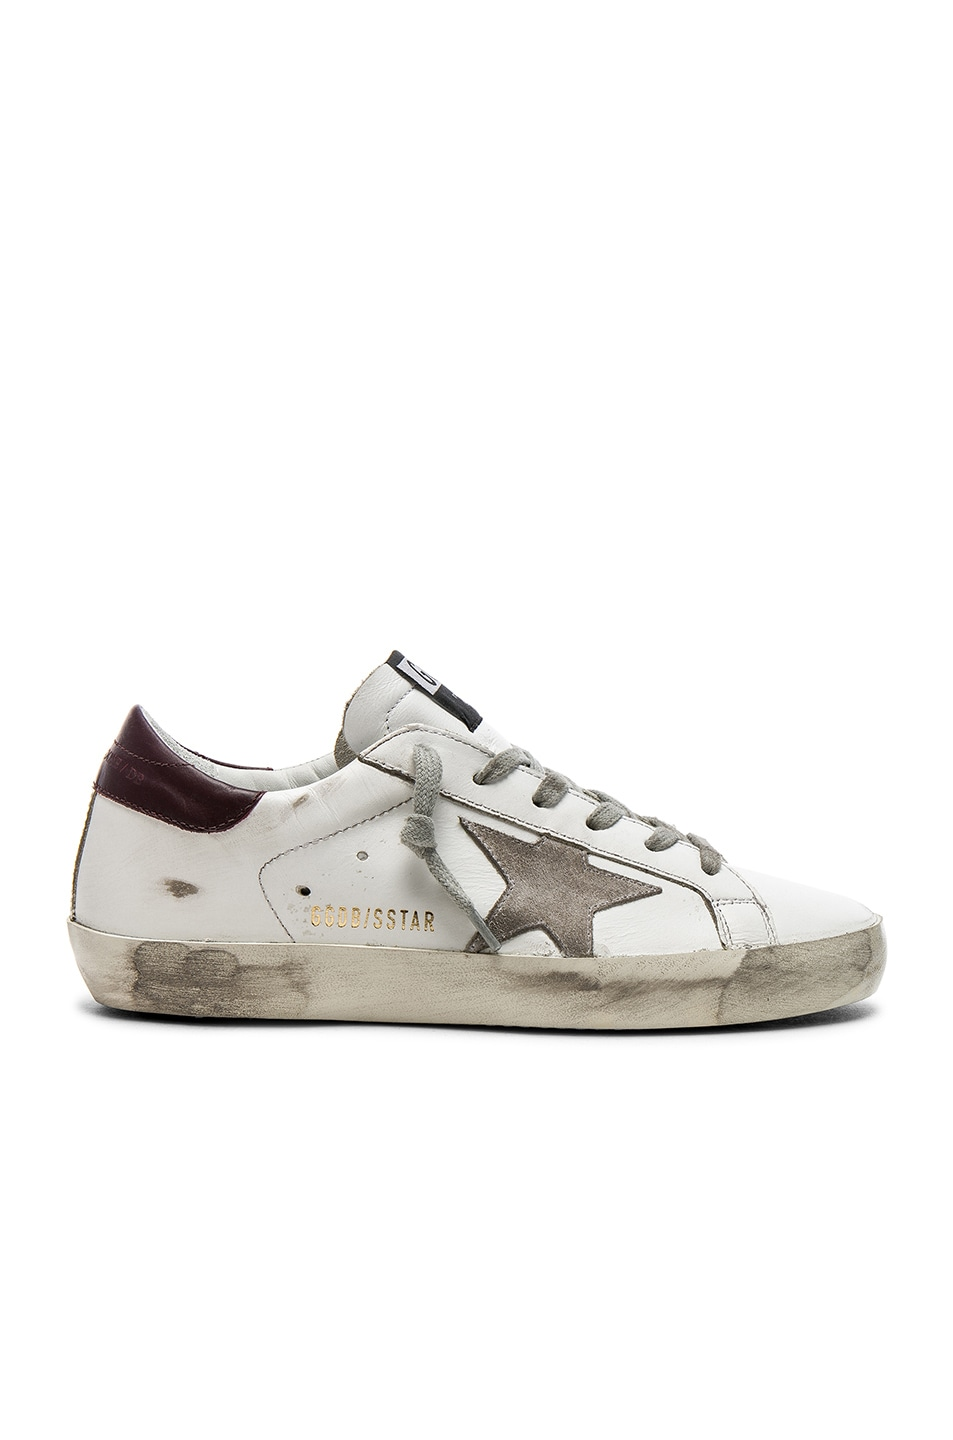 Image 1 of Golden Goose Leather Superstar Sneakers in White & Bordeaux